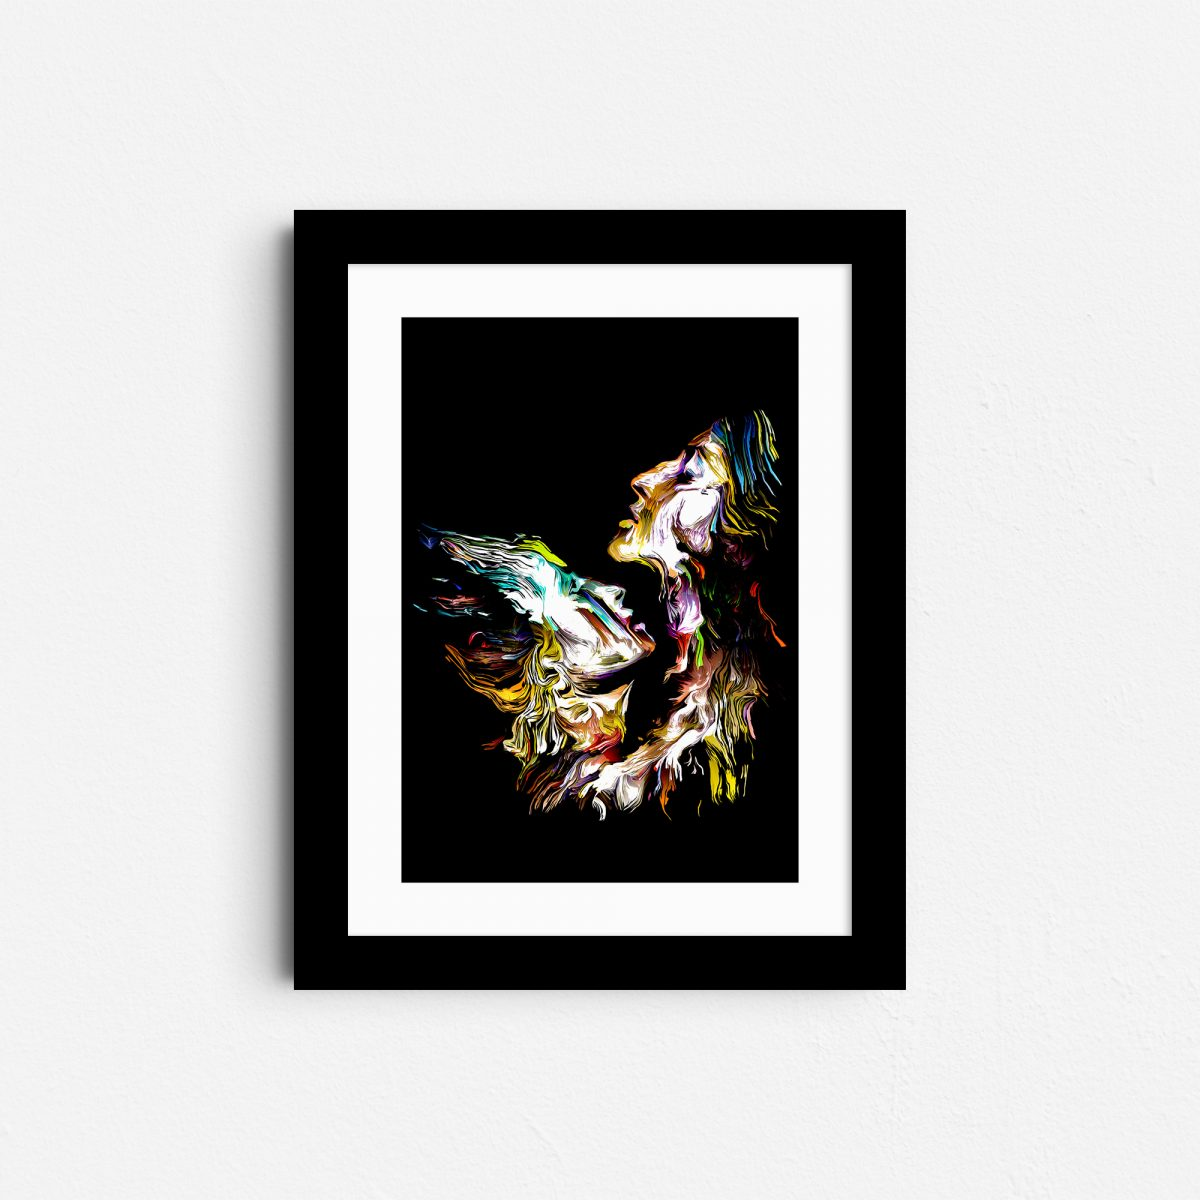 amoureux-a4-nude-erotic-wall-art-framed